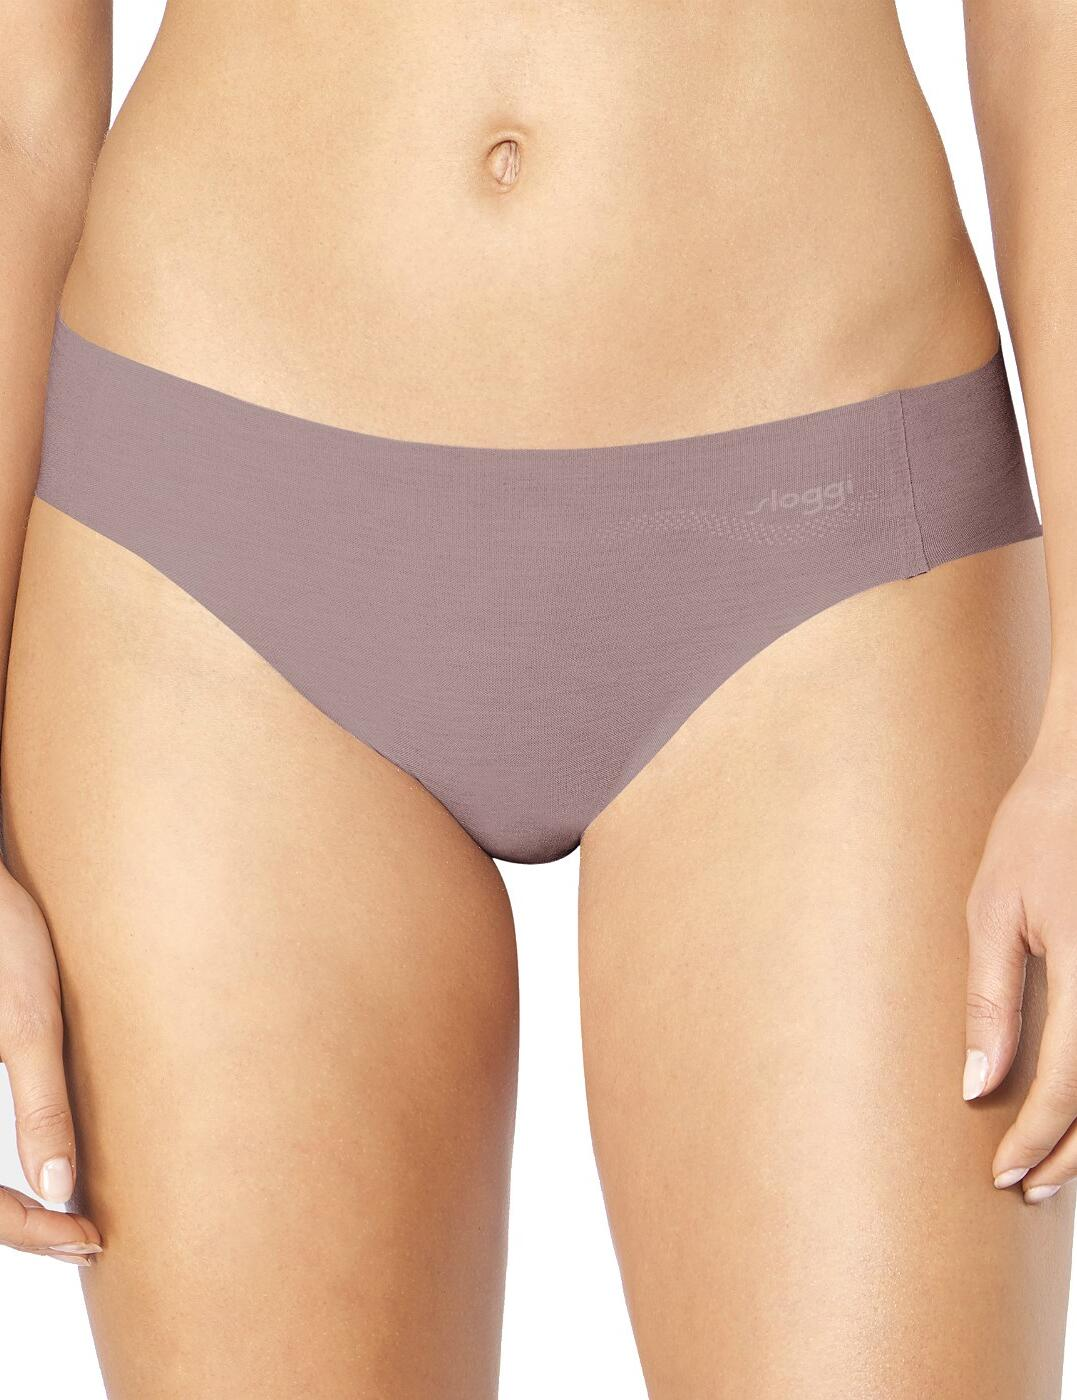 10194023 Sloggi Zero Feel Natural Tai Brief - 10194023 Rosewood